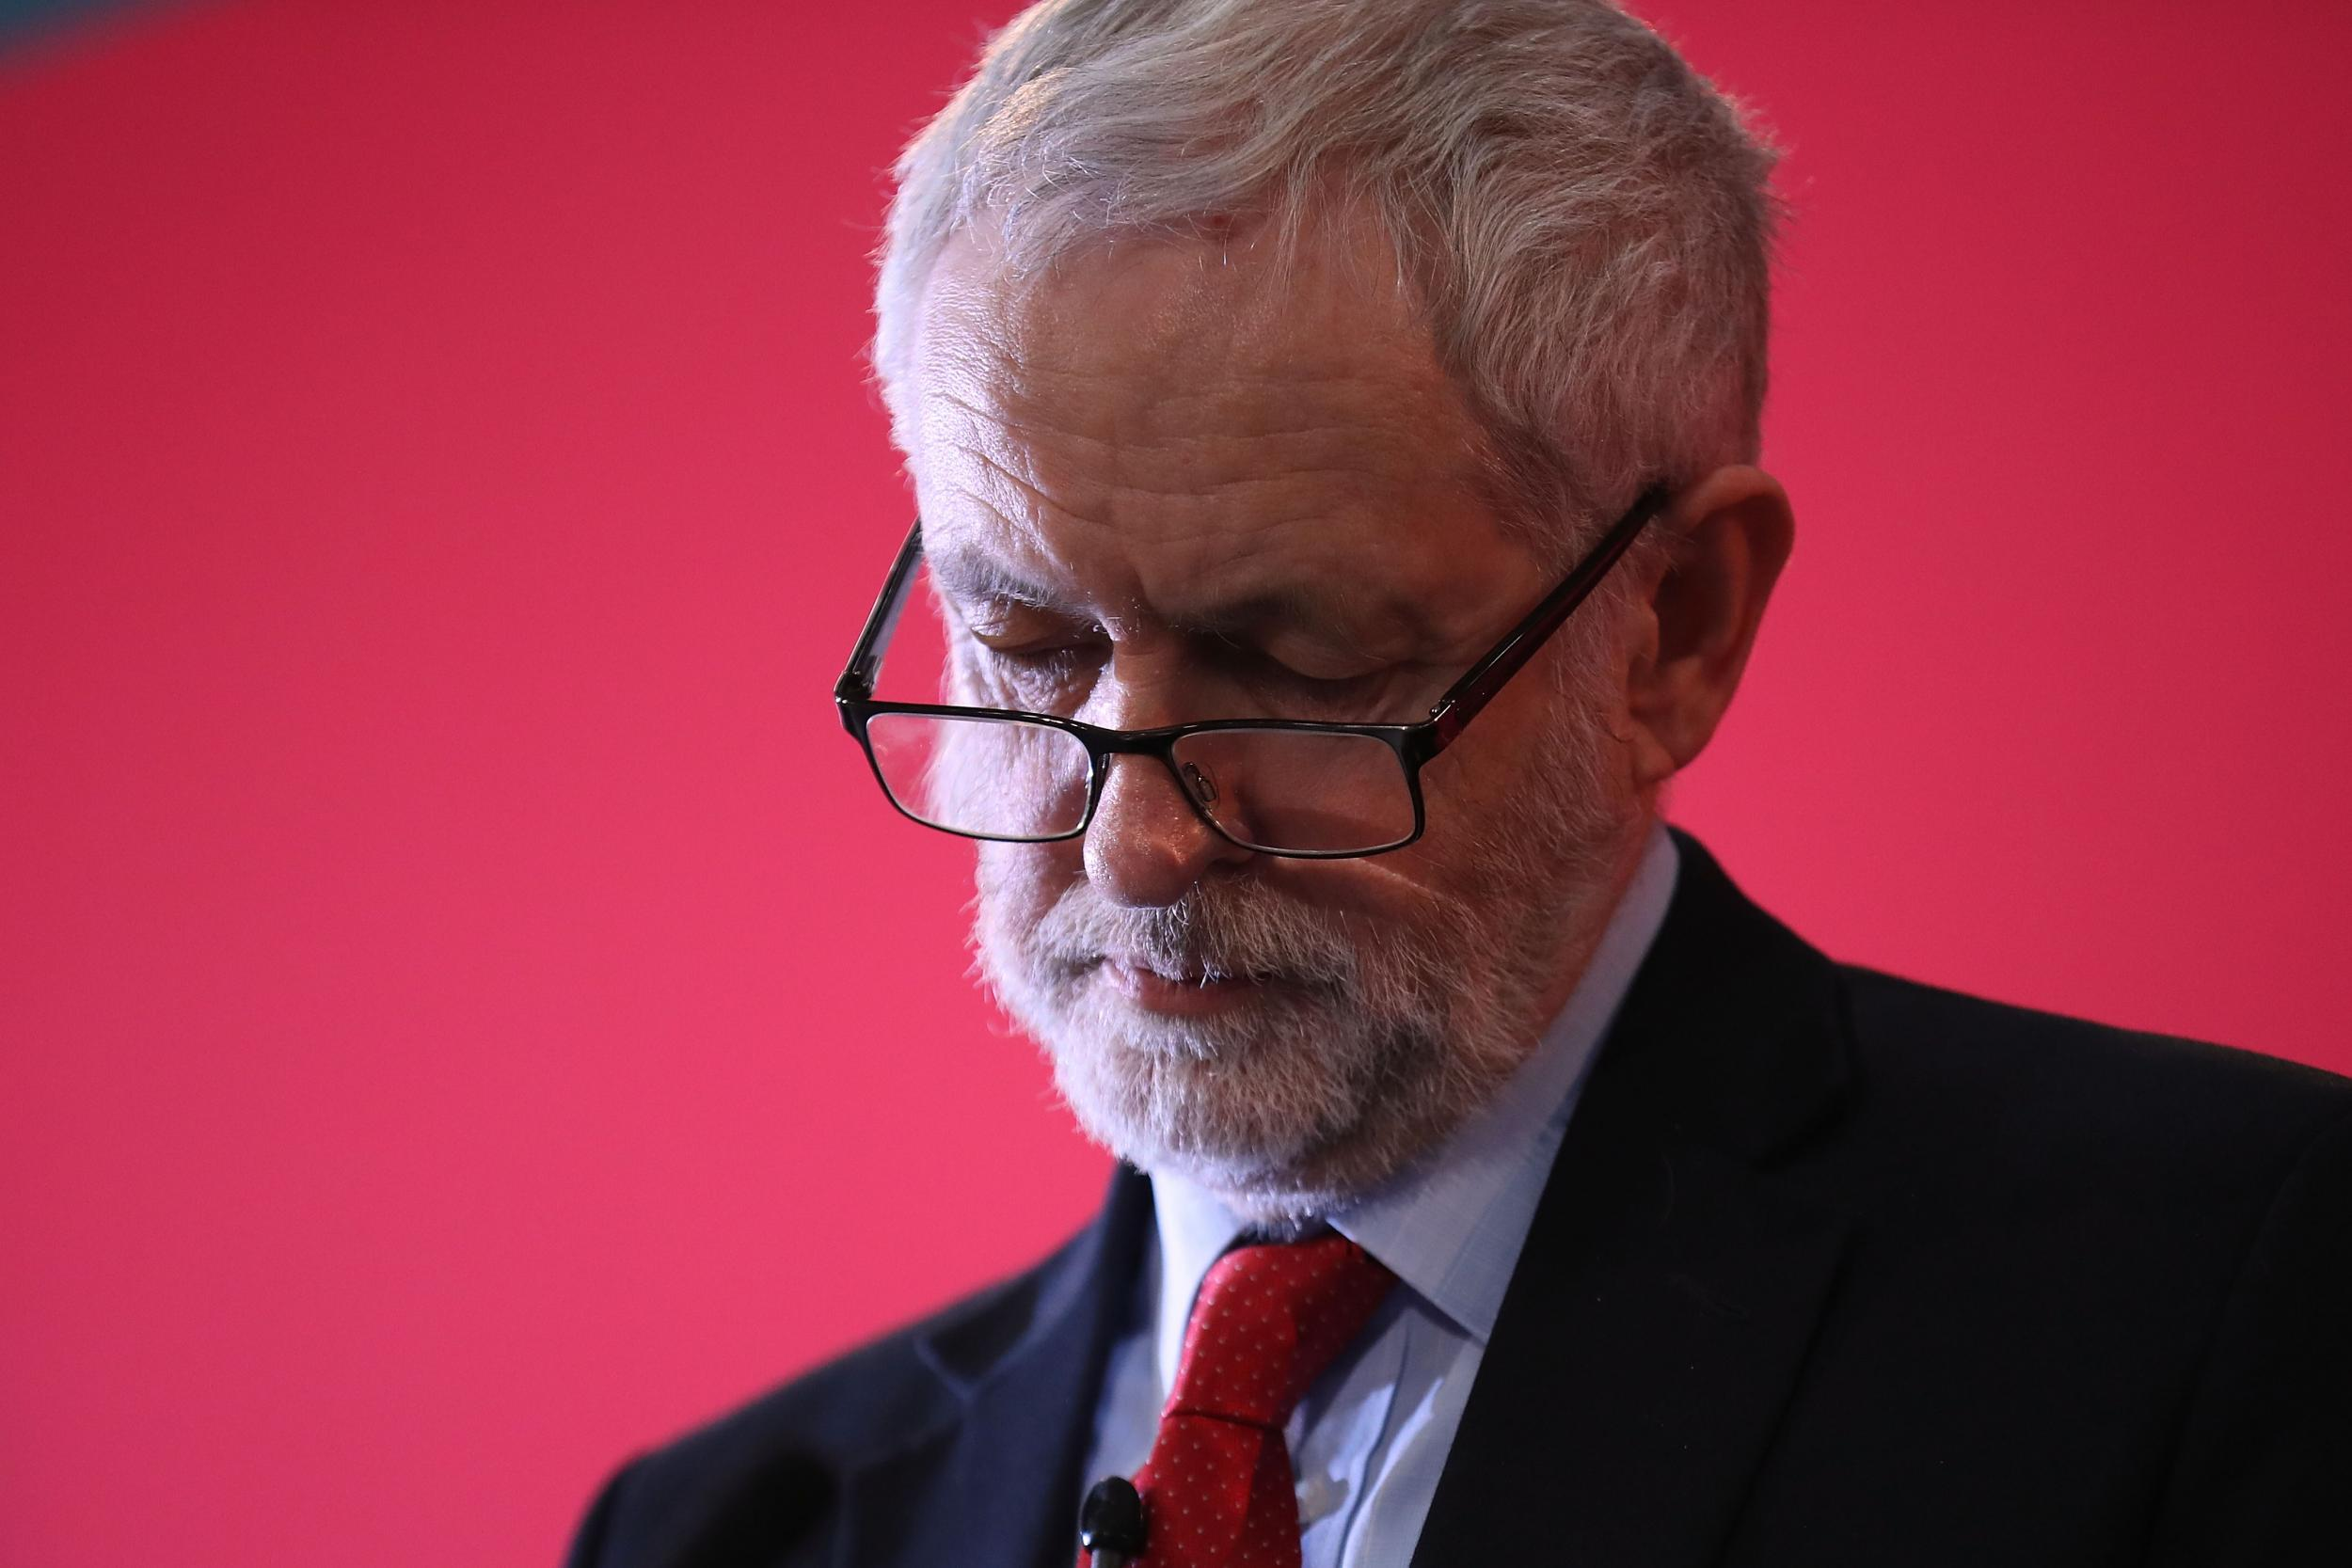 Jeremy Corbyn Apologises for Labour Antisemitism Ahead of Meeting With Jewish Leaders